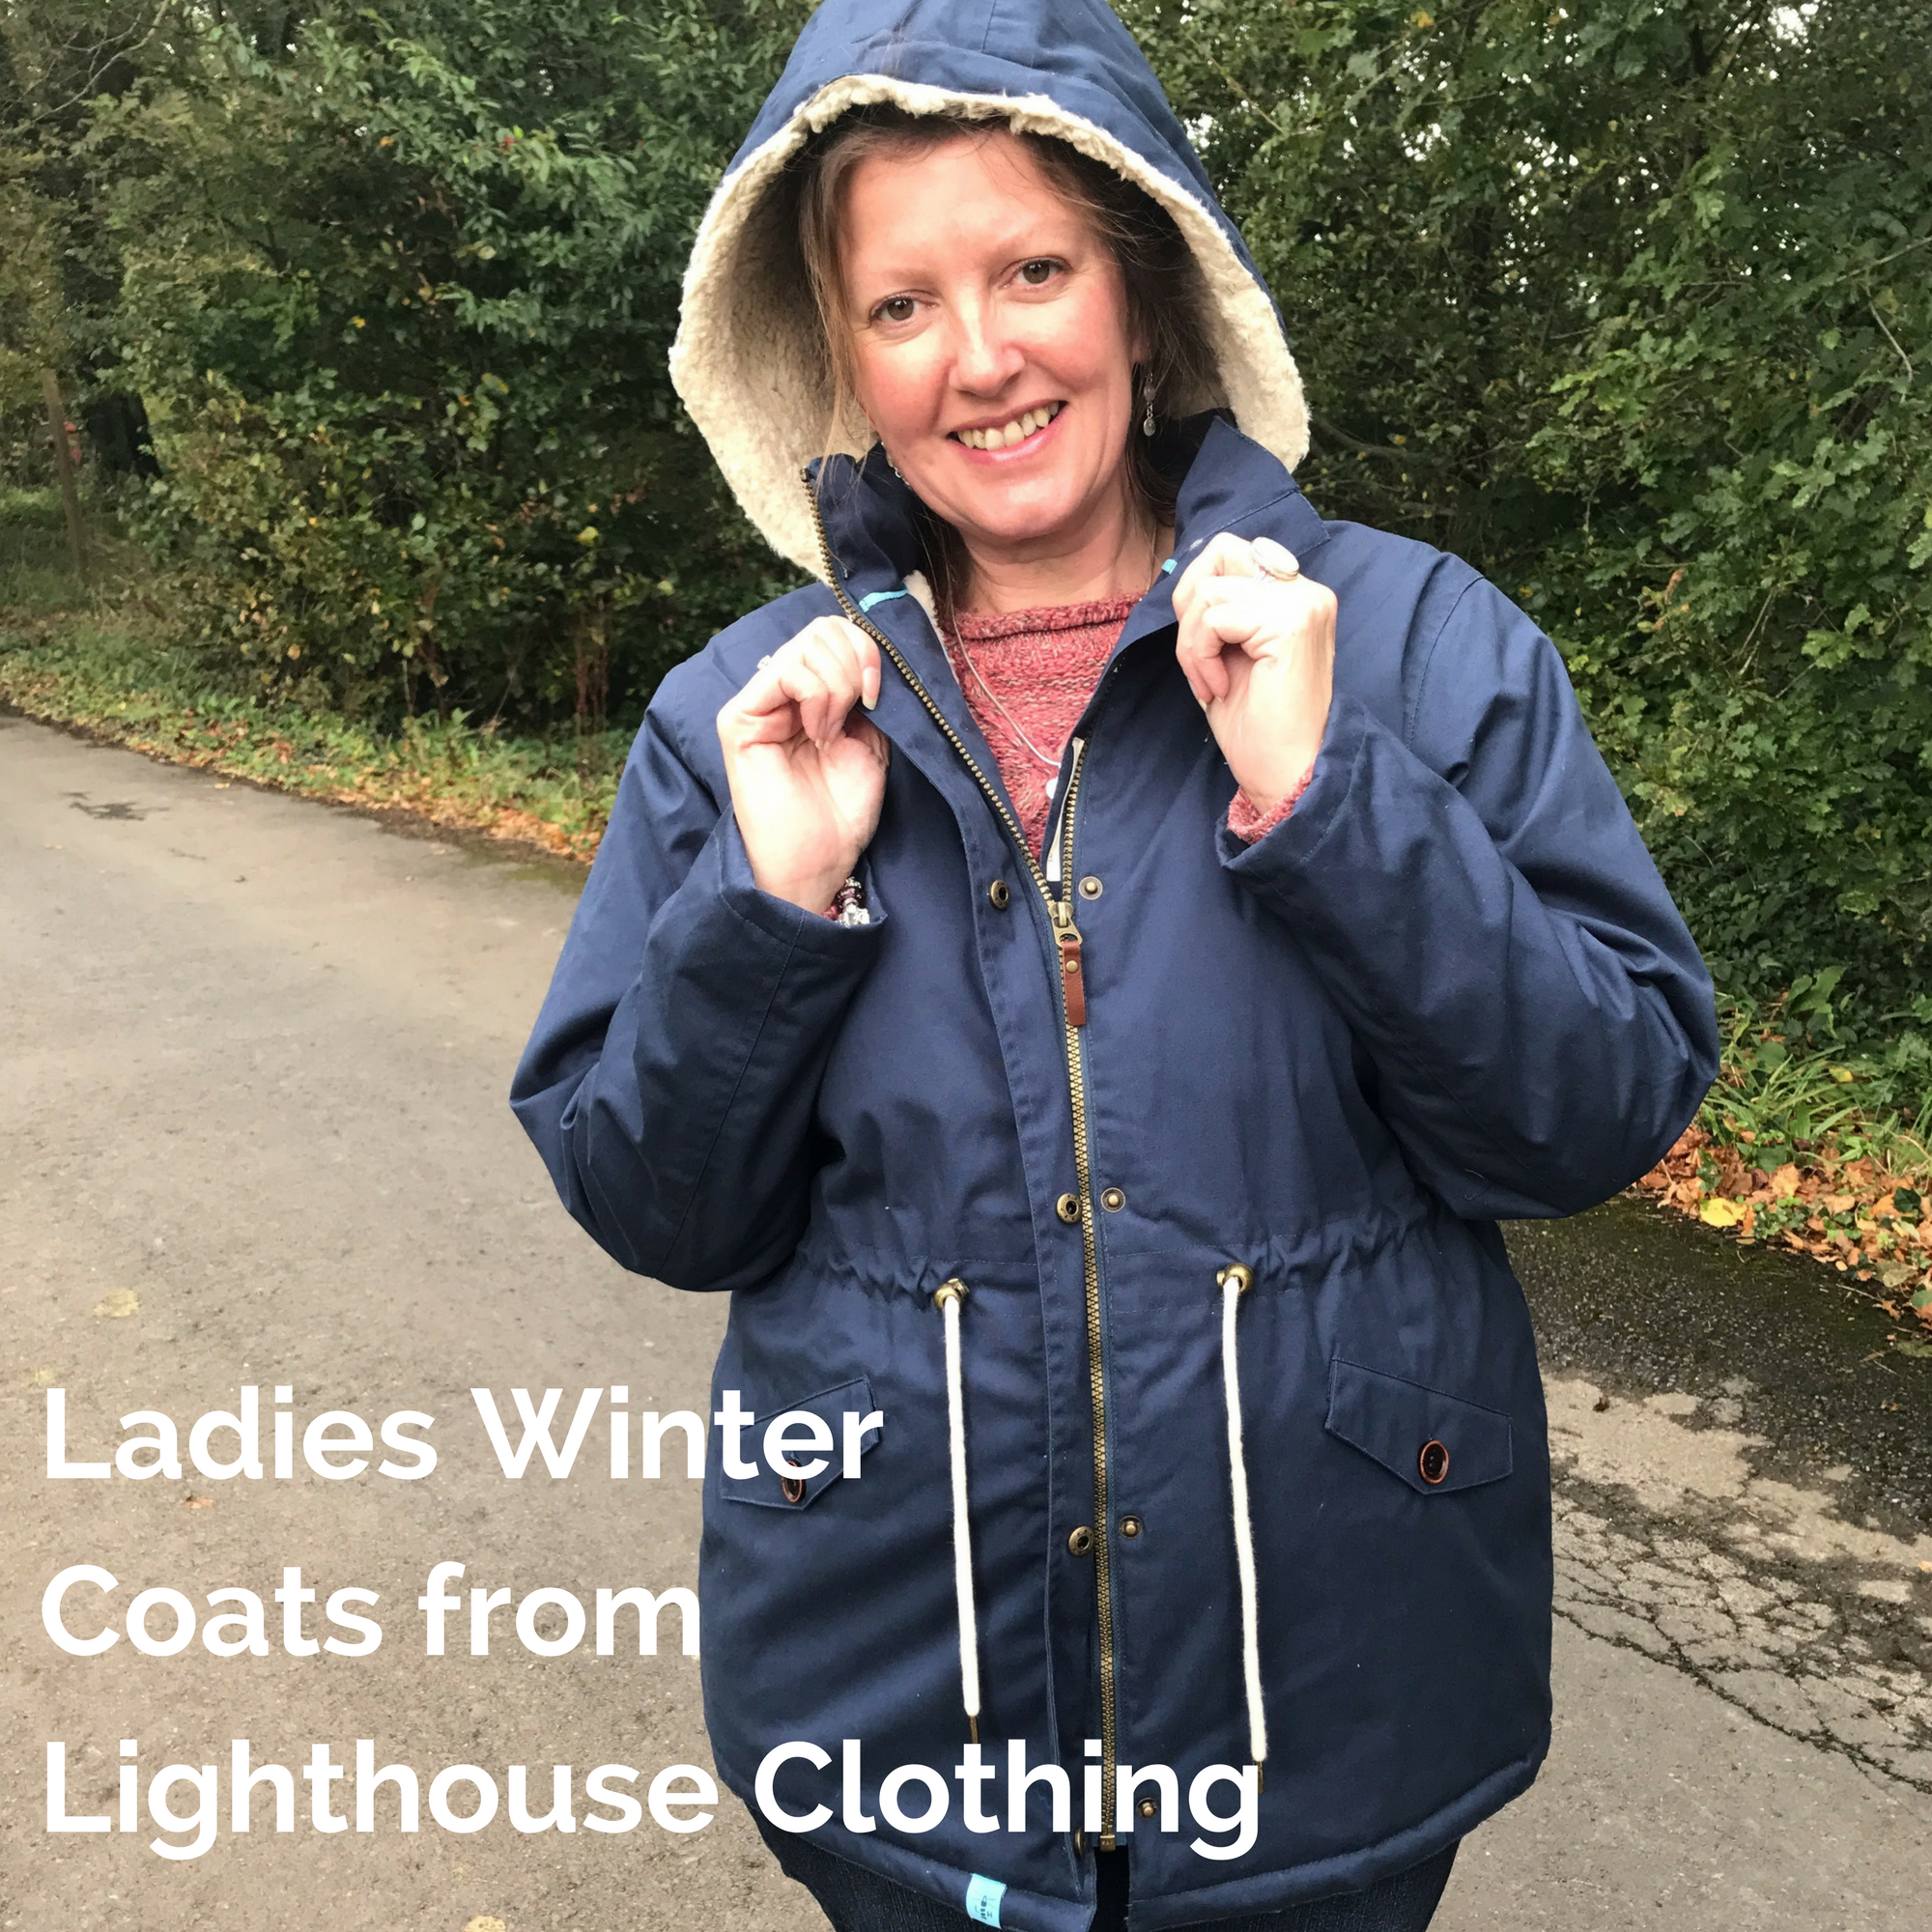 Ladies Winter Coats from Lighthouse Clothing